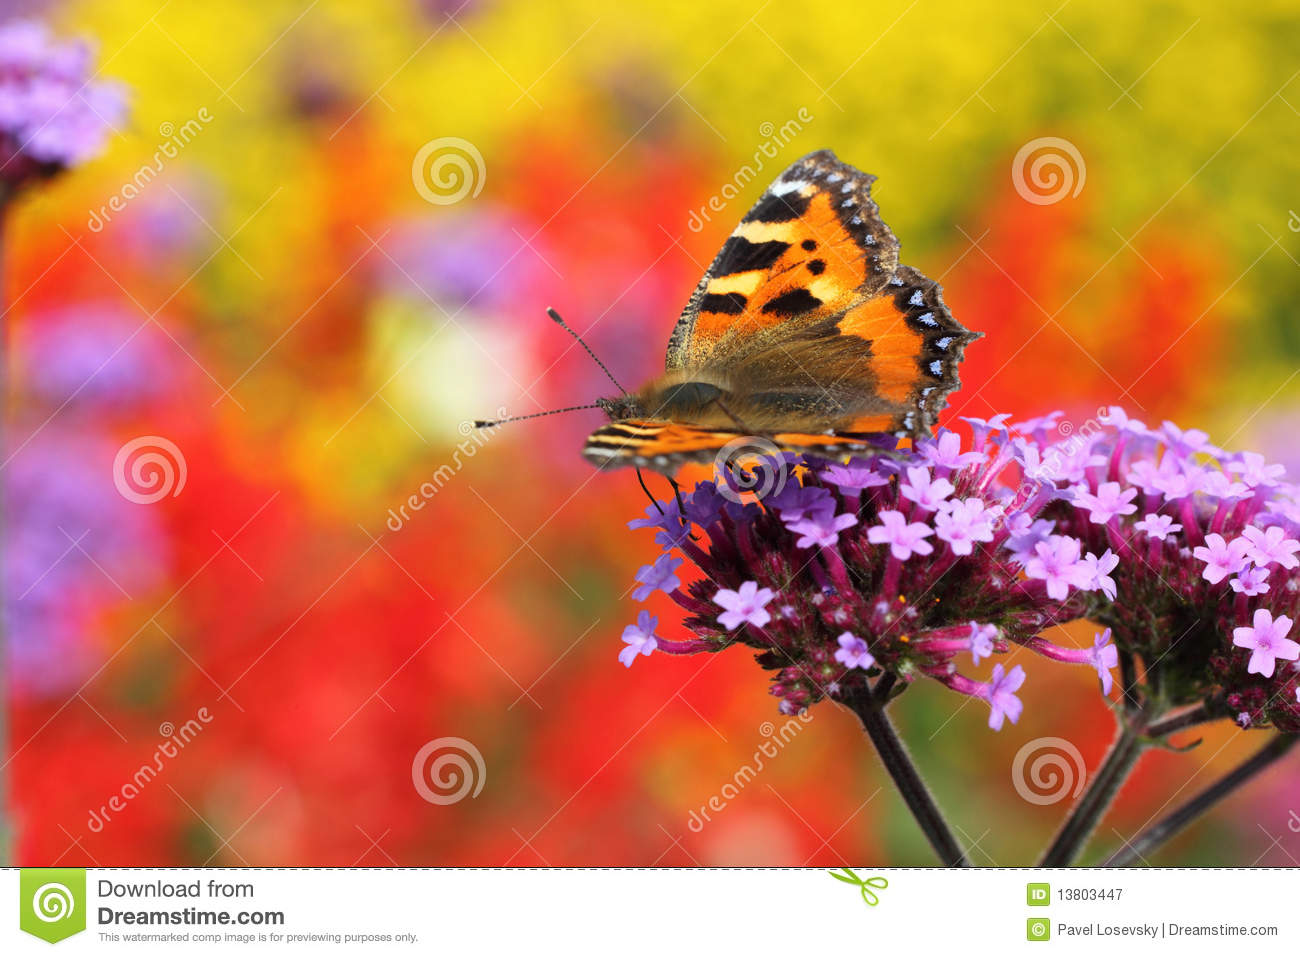 Butterfly urticaria in profile sitting on flower